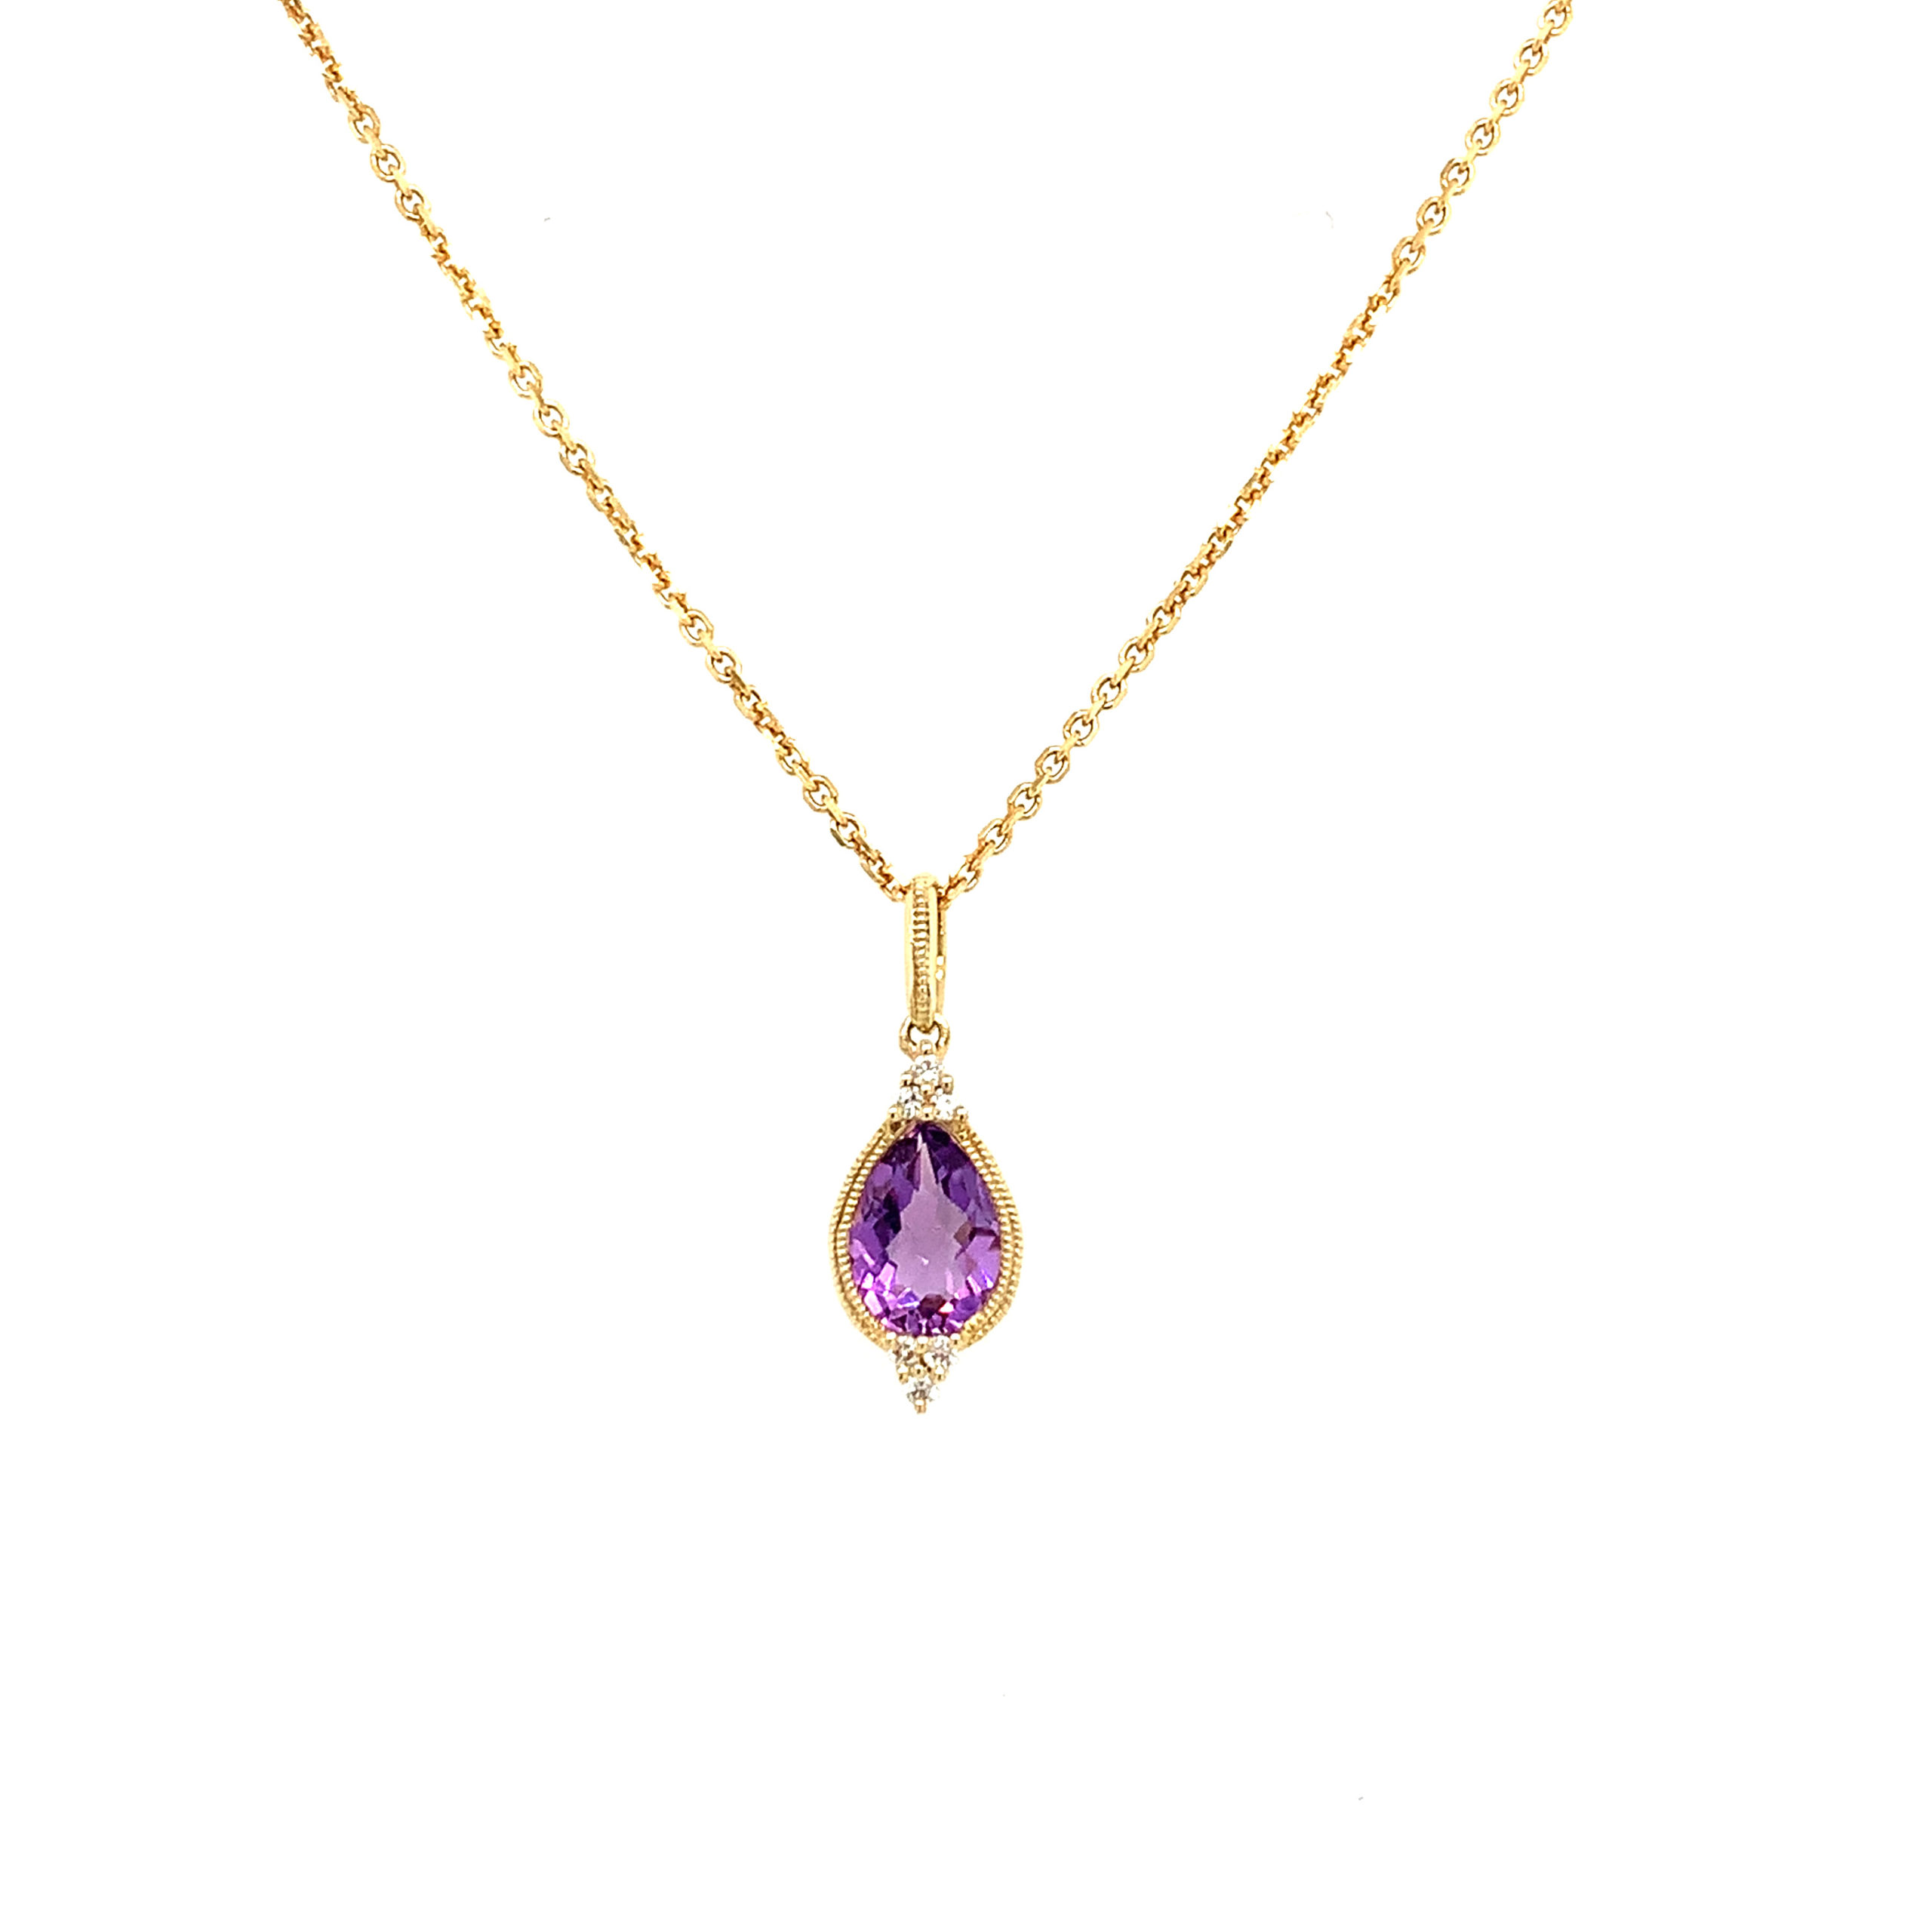 Yellow Gold Amethyst Pendant Necklace